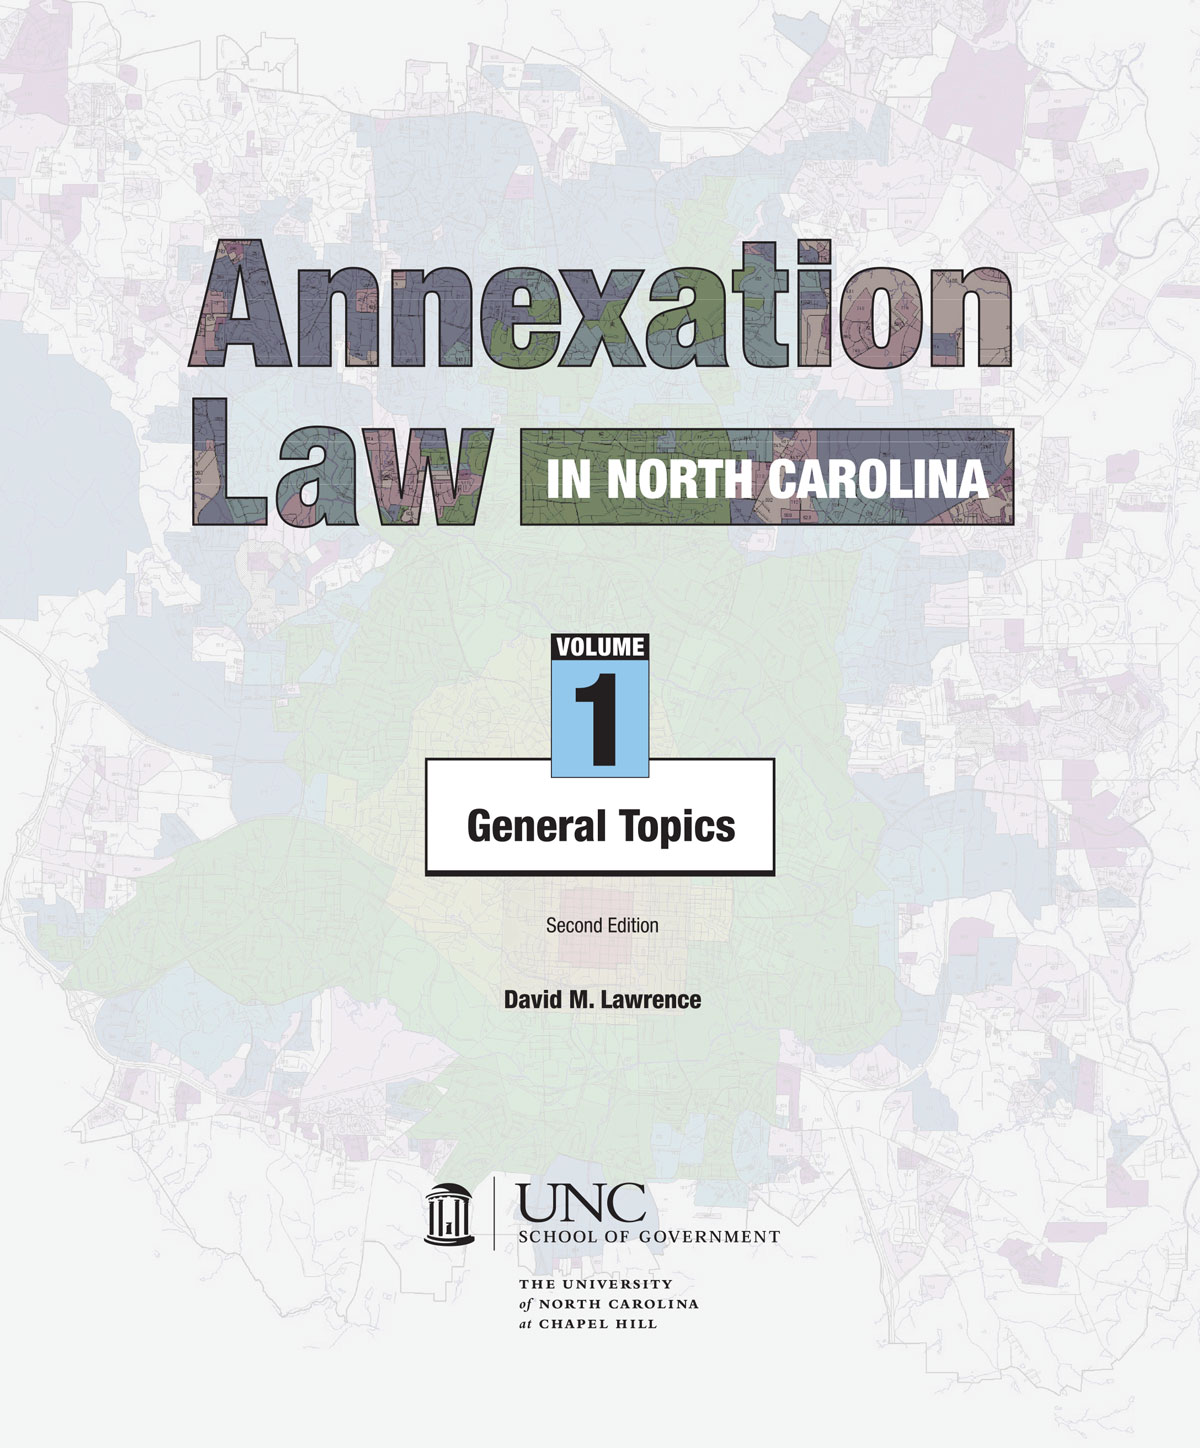 Cover image for Annexation Law in North Carolina: Volume 1 - General Topics, Second Edition